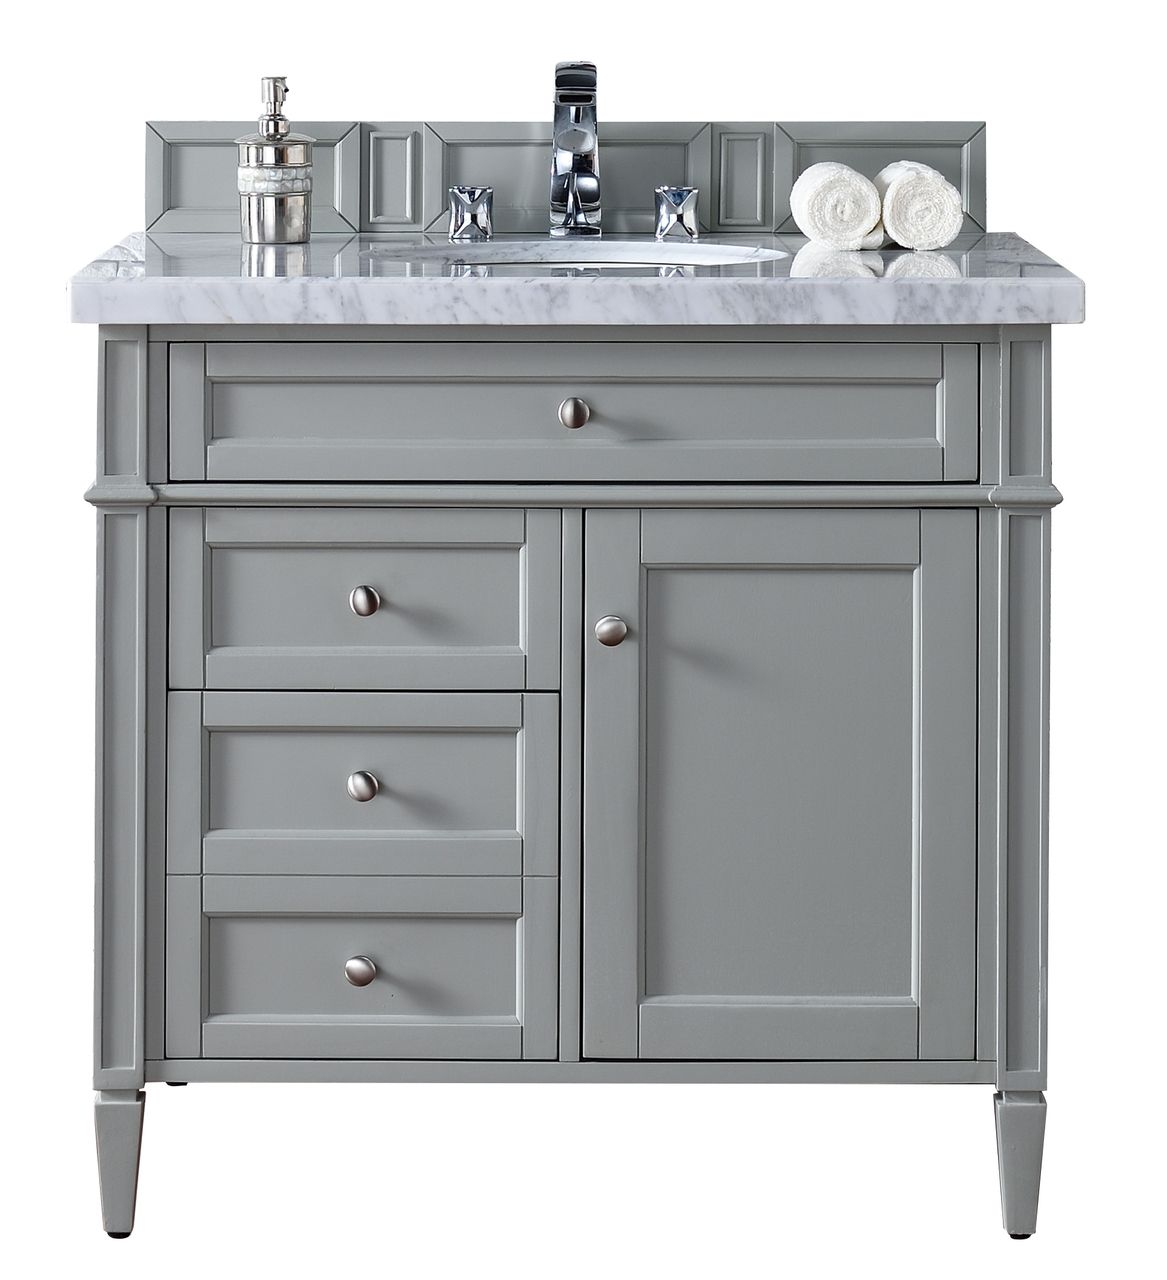 "Vanities Bathroom Grey 36"" brittany single bathroom vanity urban gray 